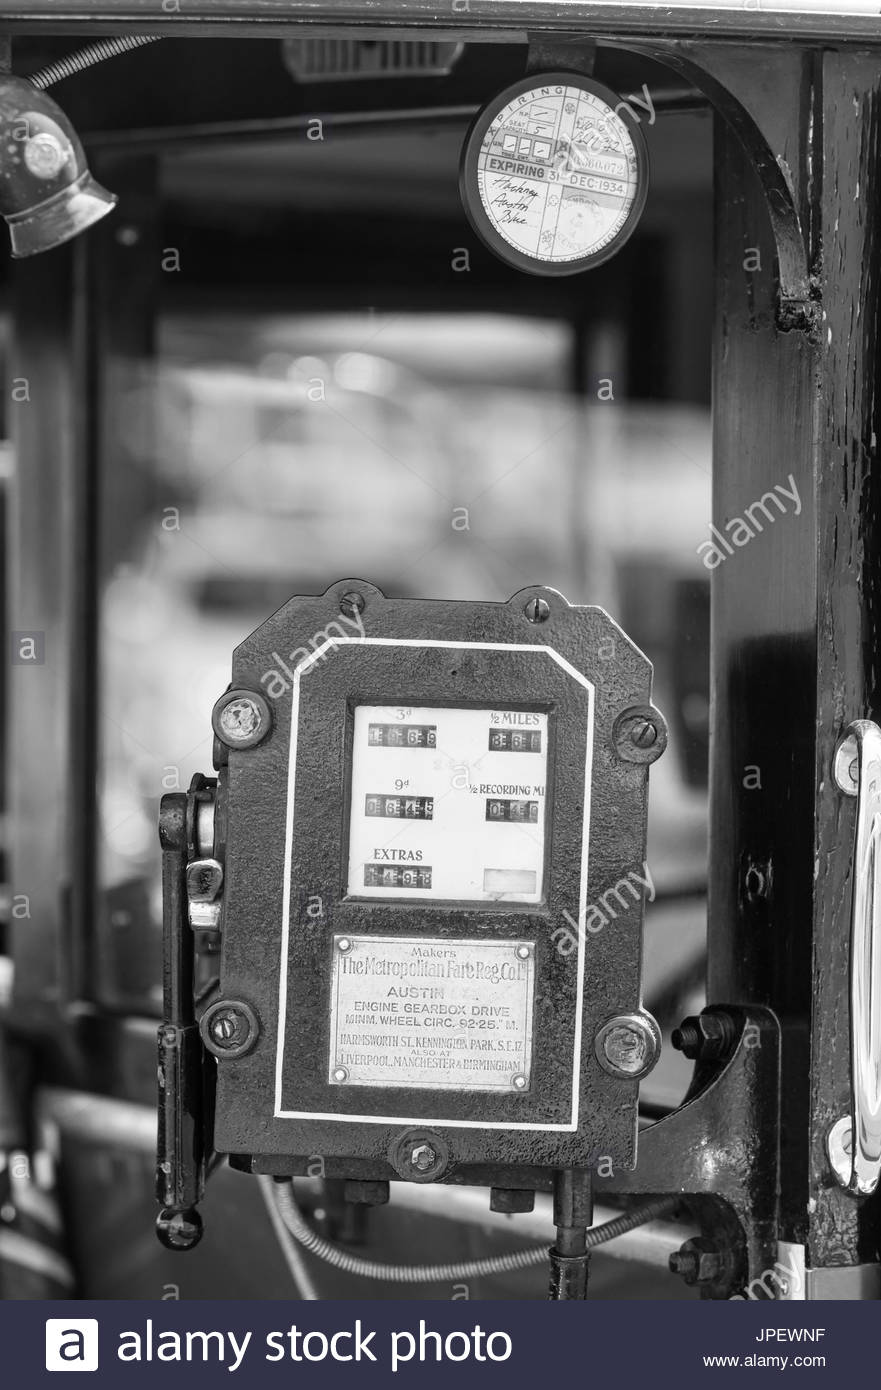 vintage-taximeter-from-1930s-made-by-the-metropolitan-fare-reg-company-JPEWNF.jpg